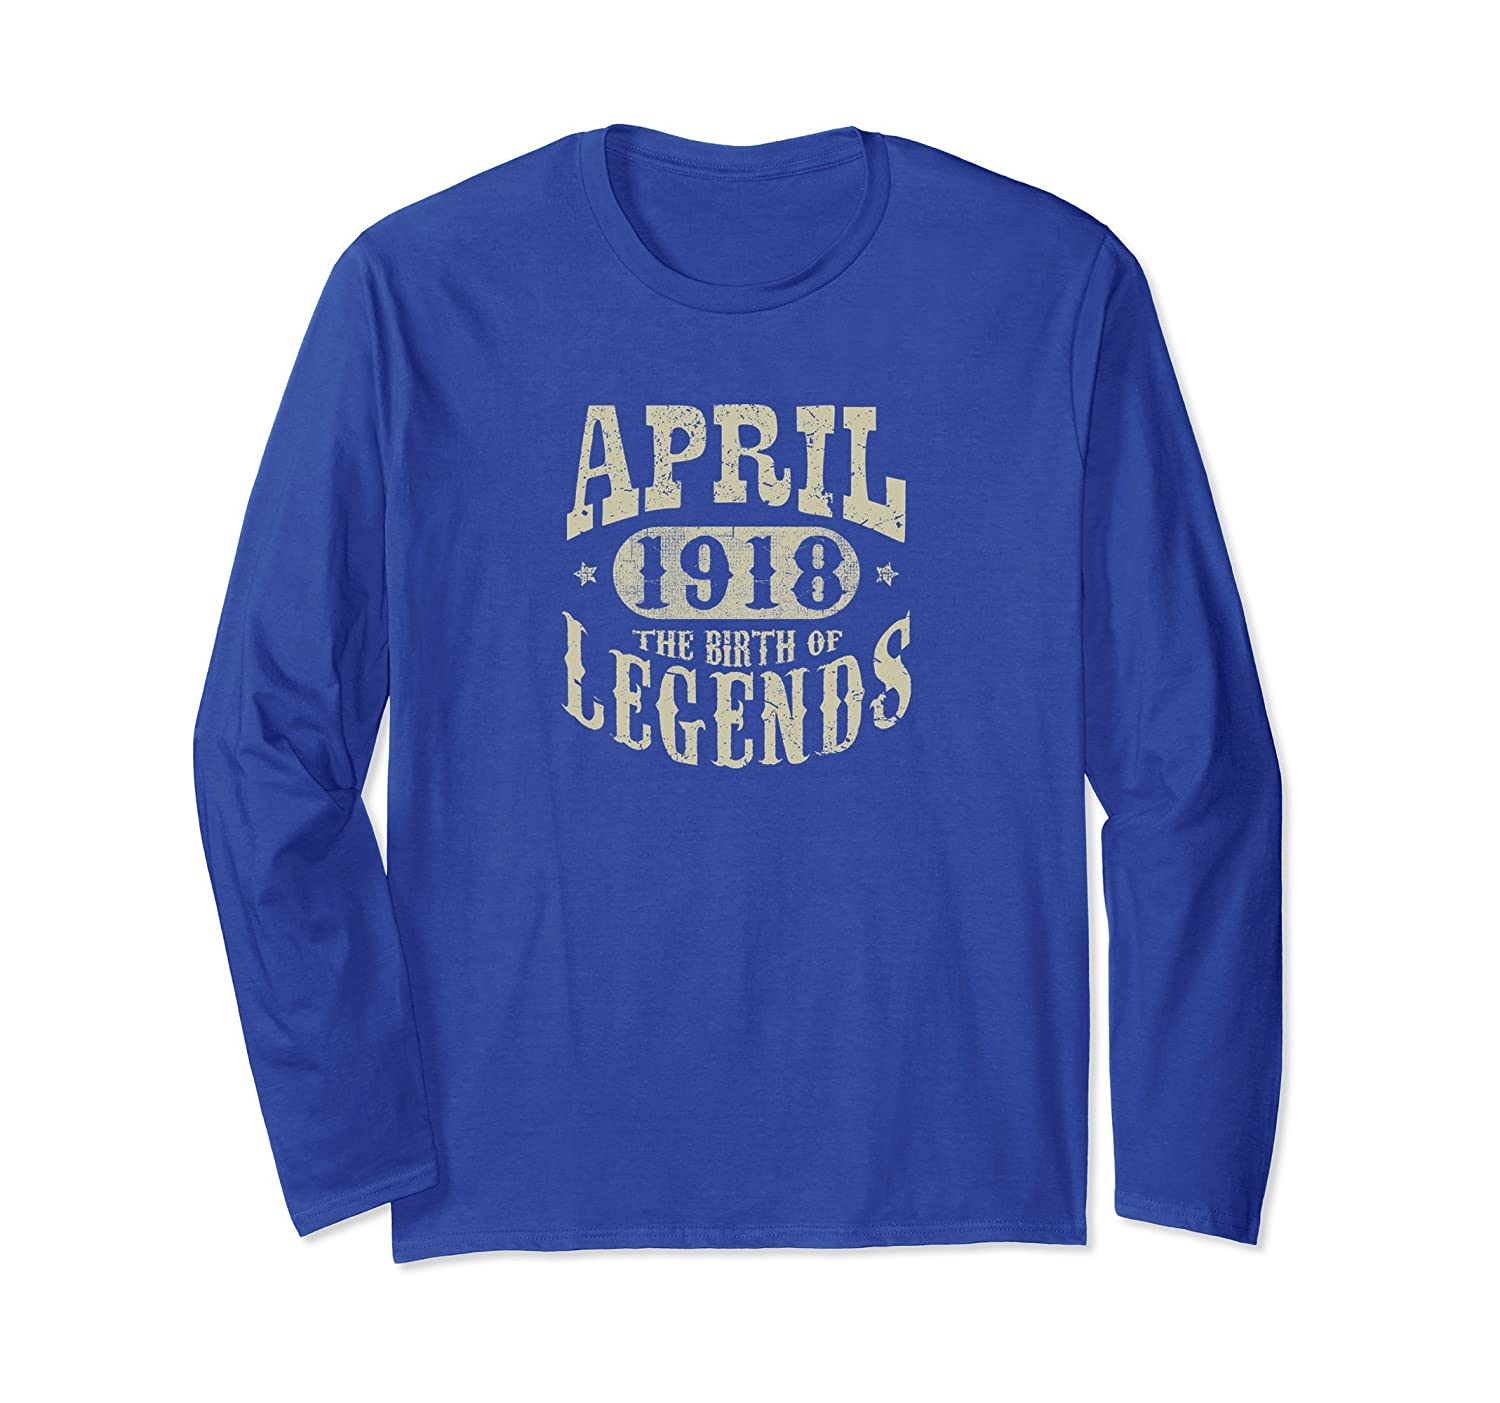 100 Years 100th Bday April 1918 Birth of Legend Longsleeve-ah my shirt one gift